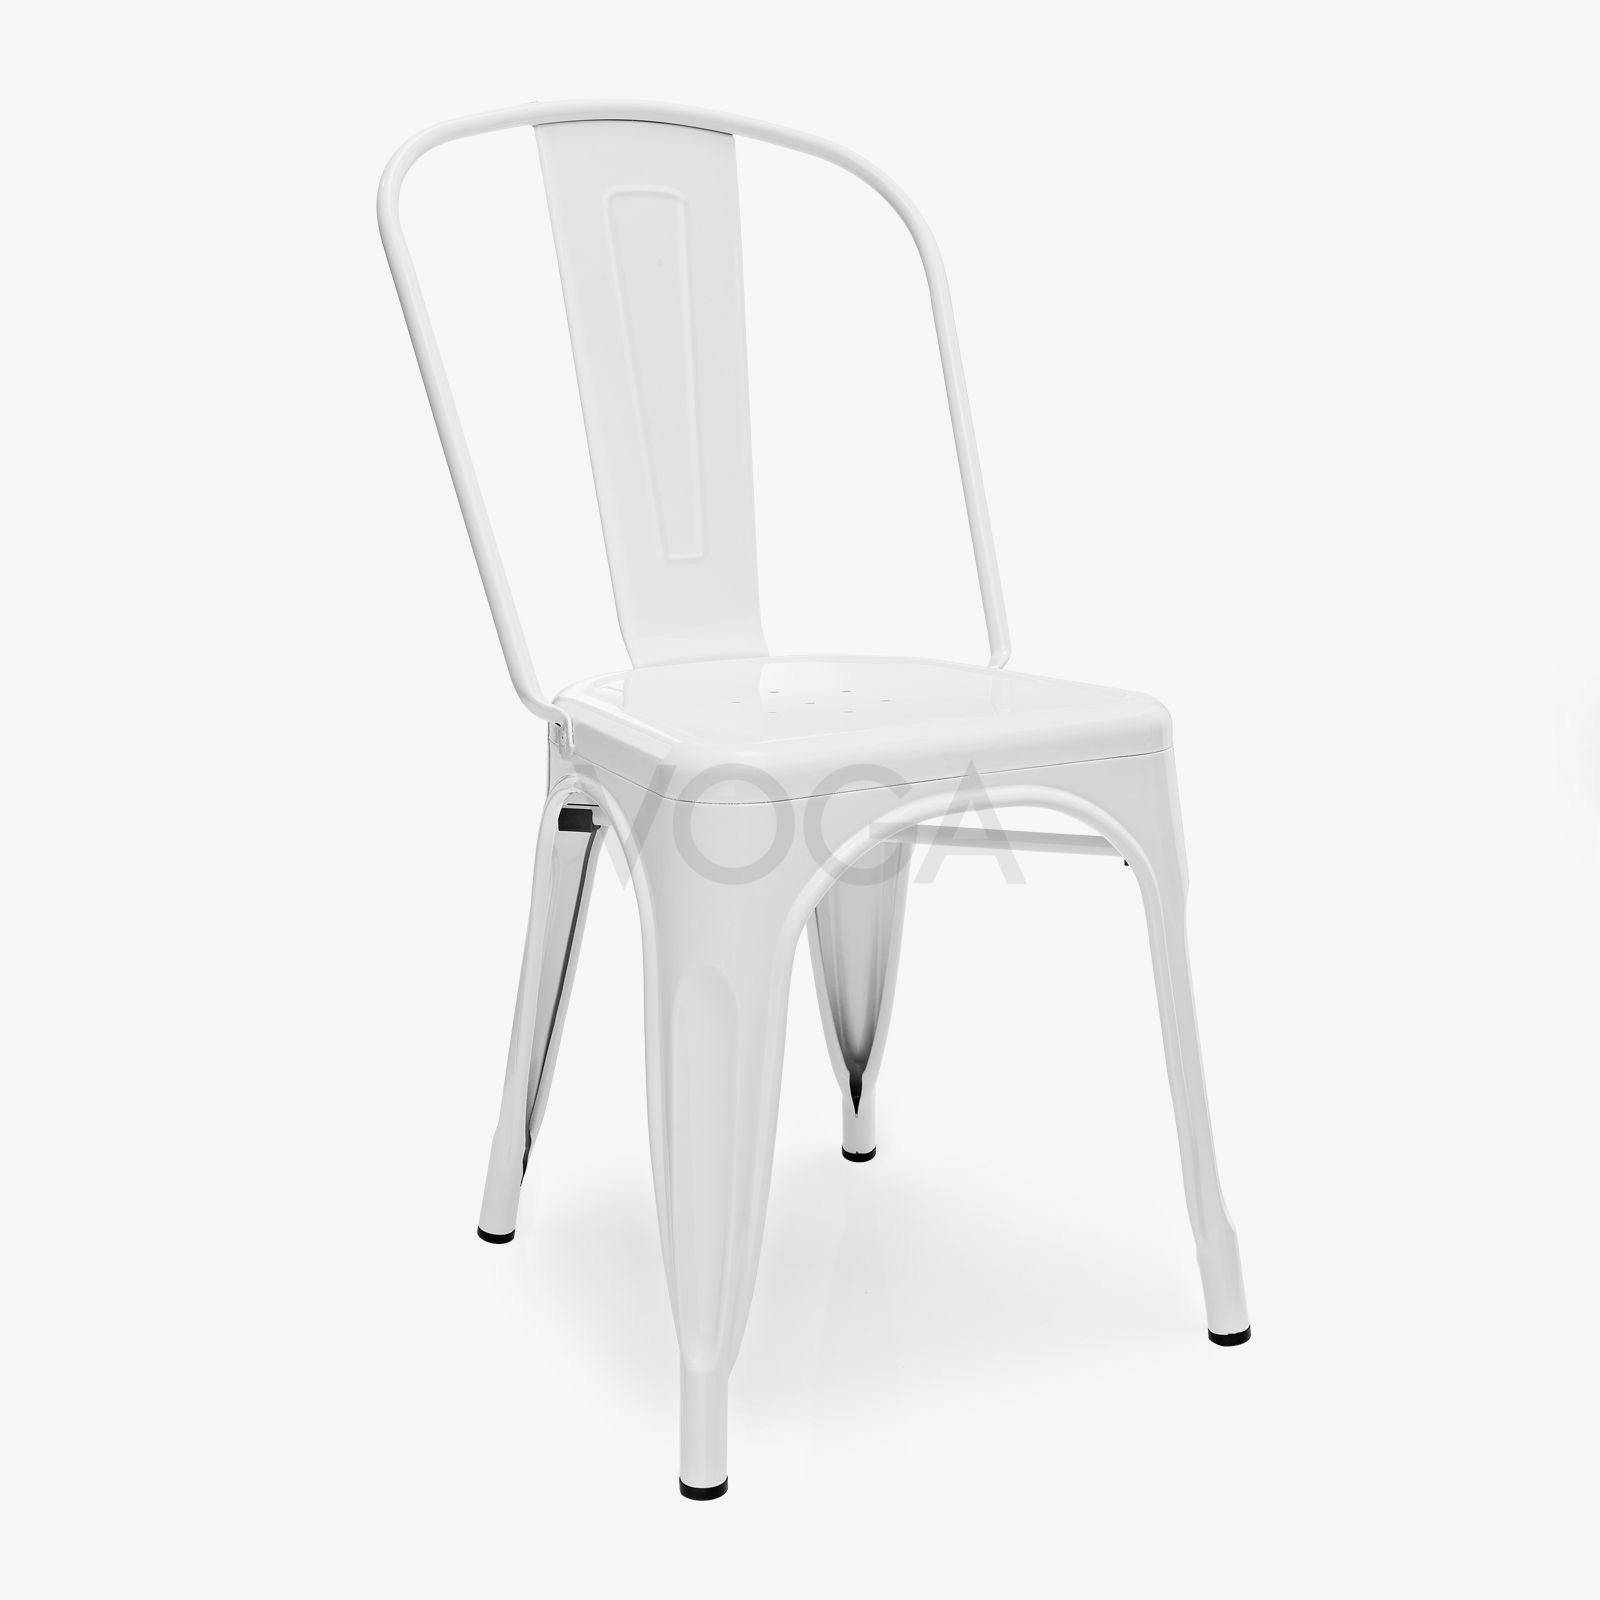 Sedia Tolix A Chair Replica Furniture Tolix